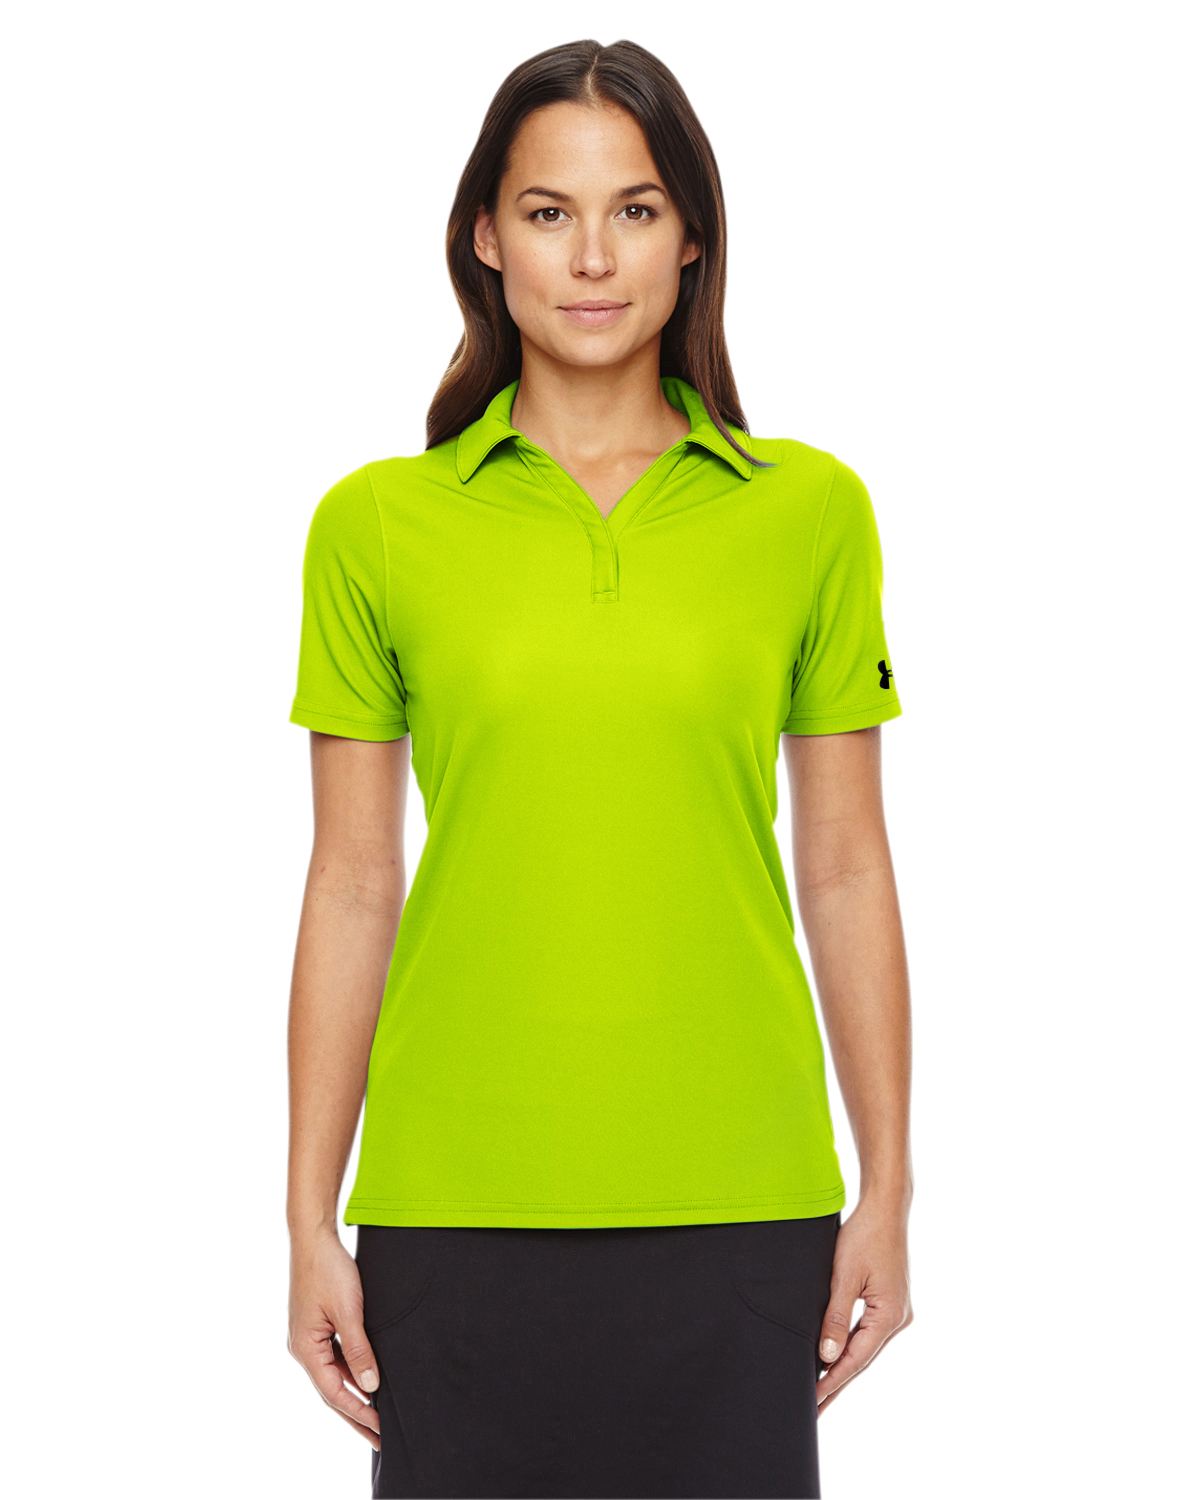 780b4fde Under Armour Ladies Performance Polo. 1261606. Under Armour High-Vis  Yellow; Under ...